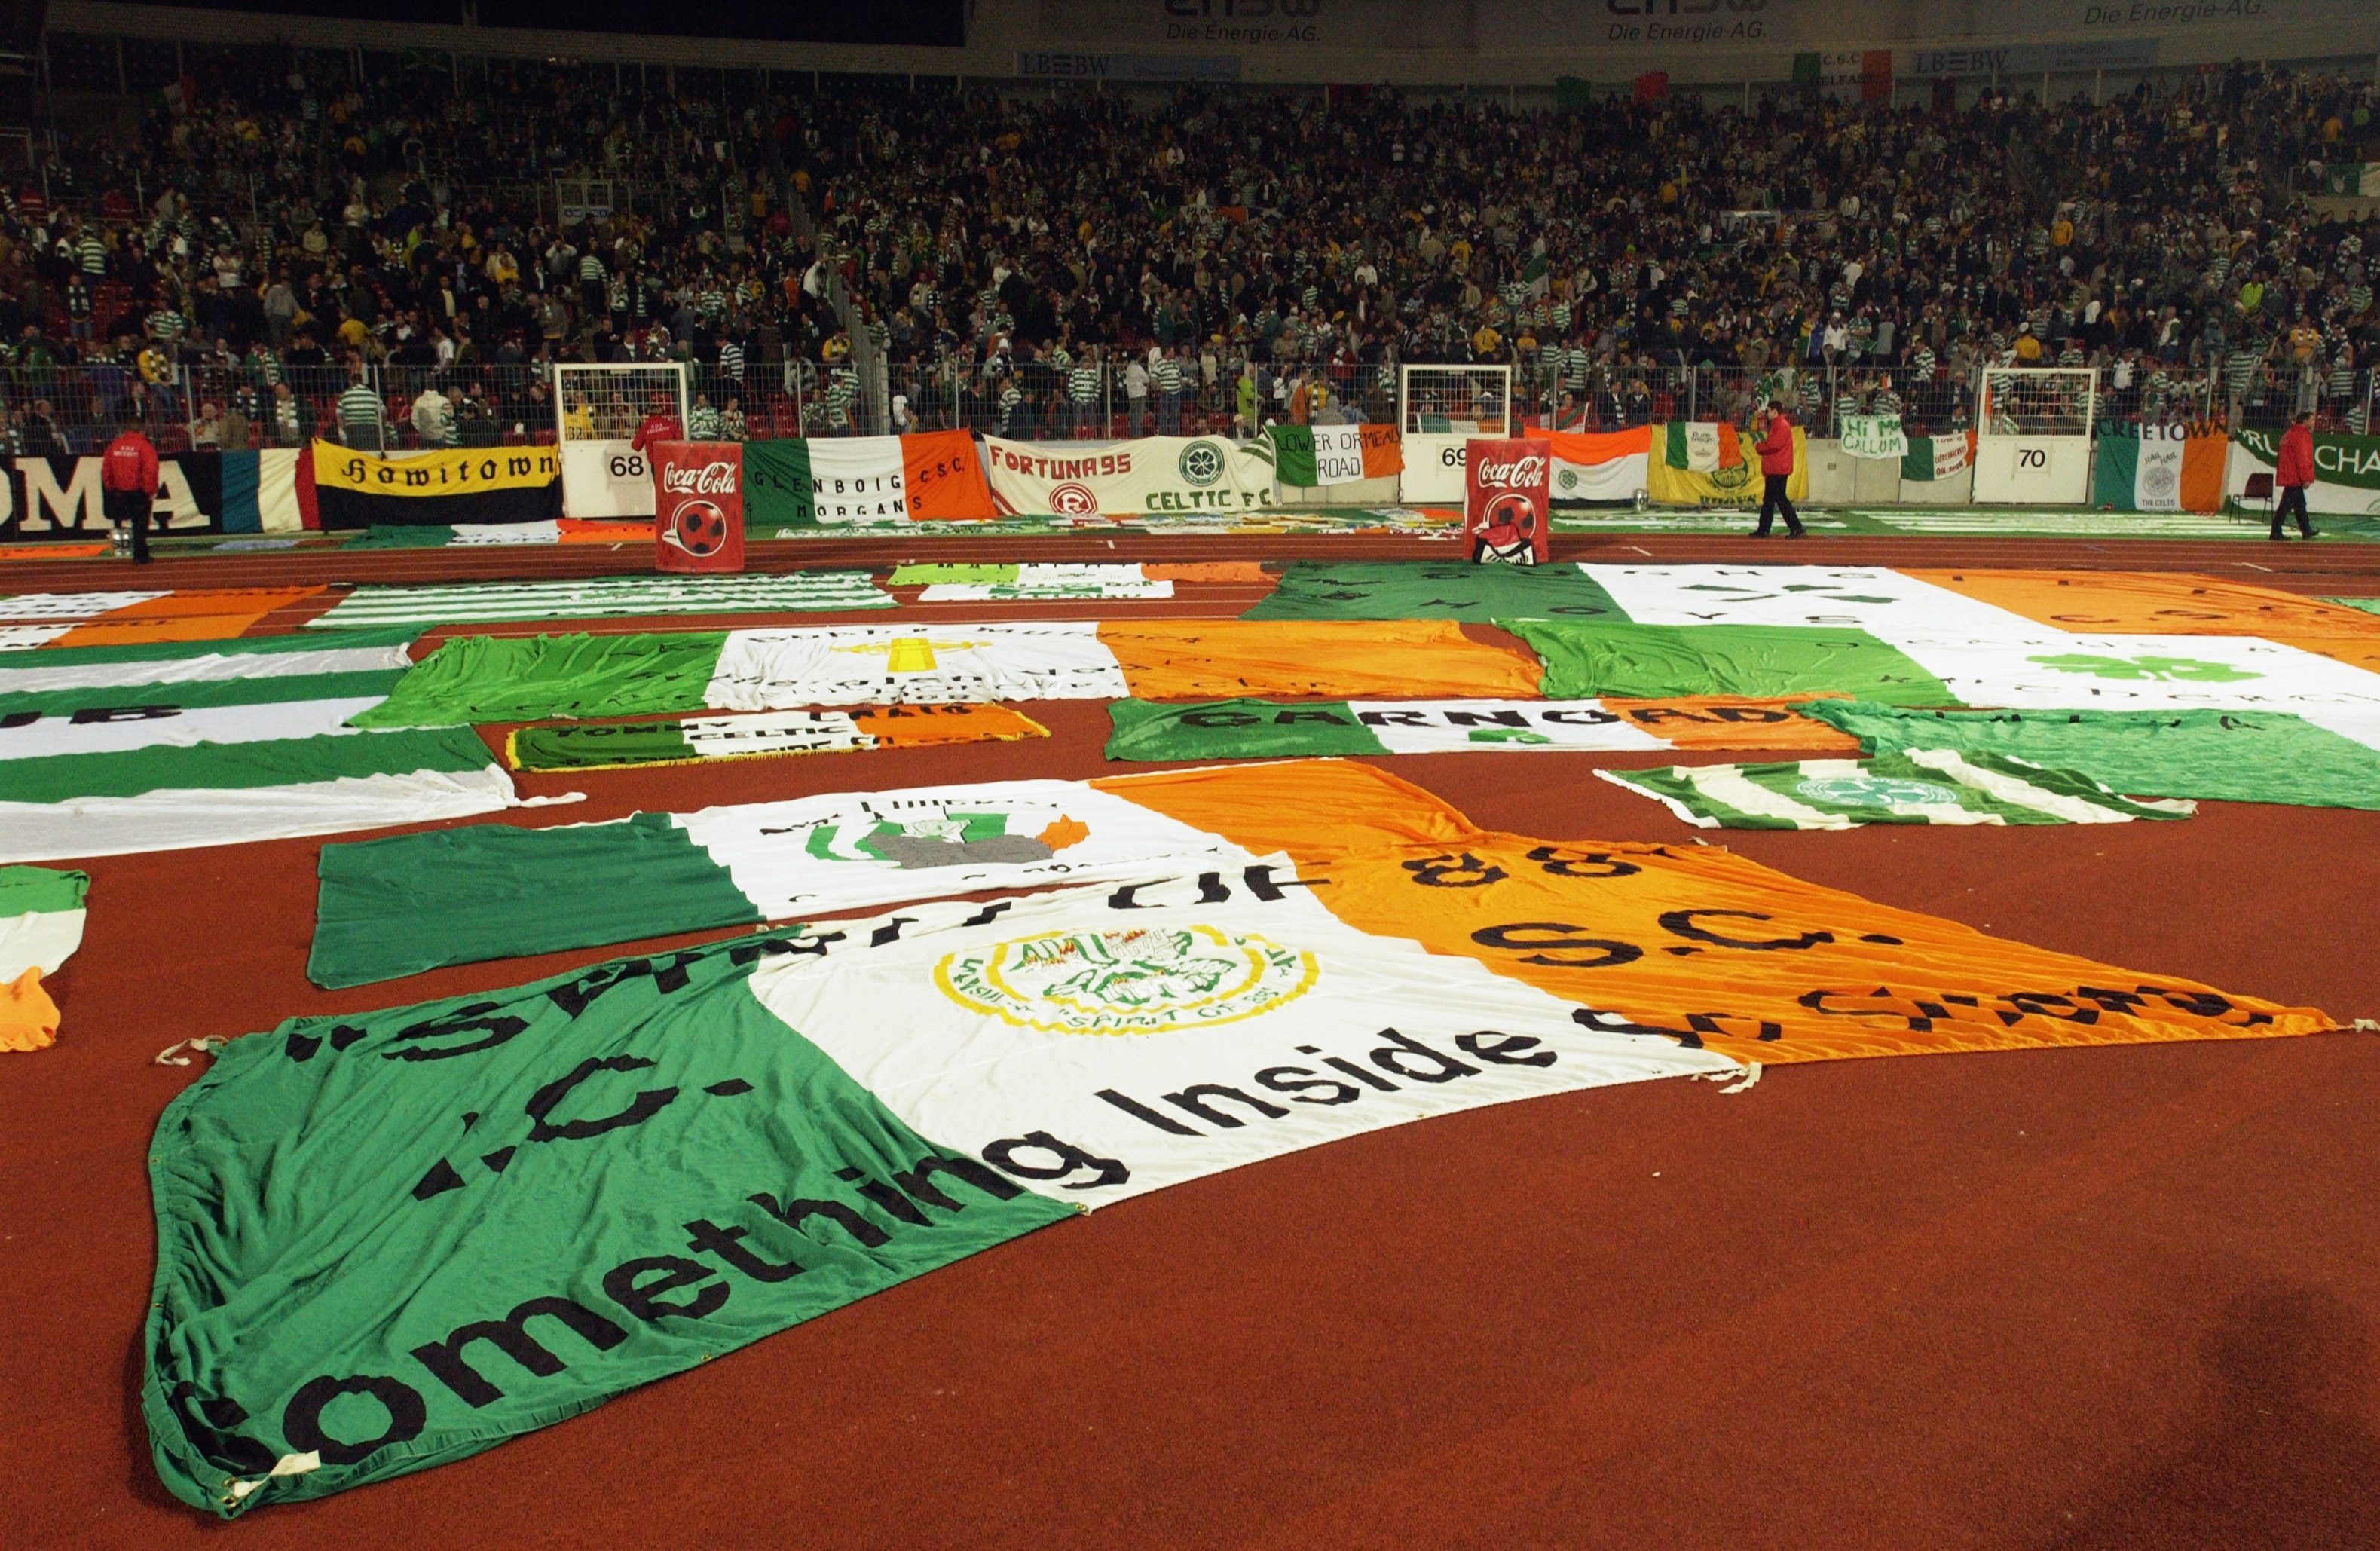 Tricolour CSC Banners Displayed During The UEFA Cup Fourth Round Second Leg Match Between VFB Stuttgart And Celtic In 2003 Photo By Stuart Franklin Getty